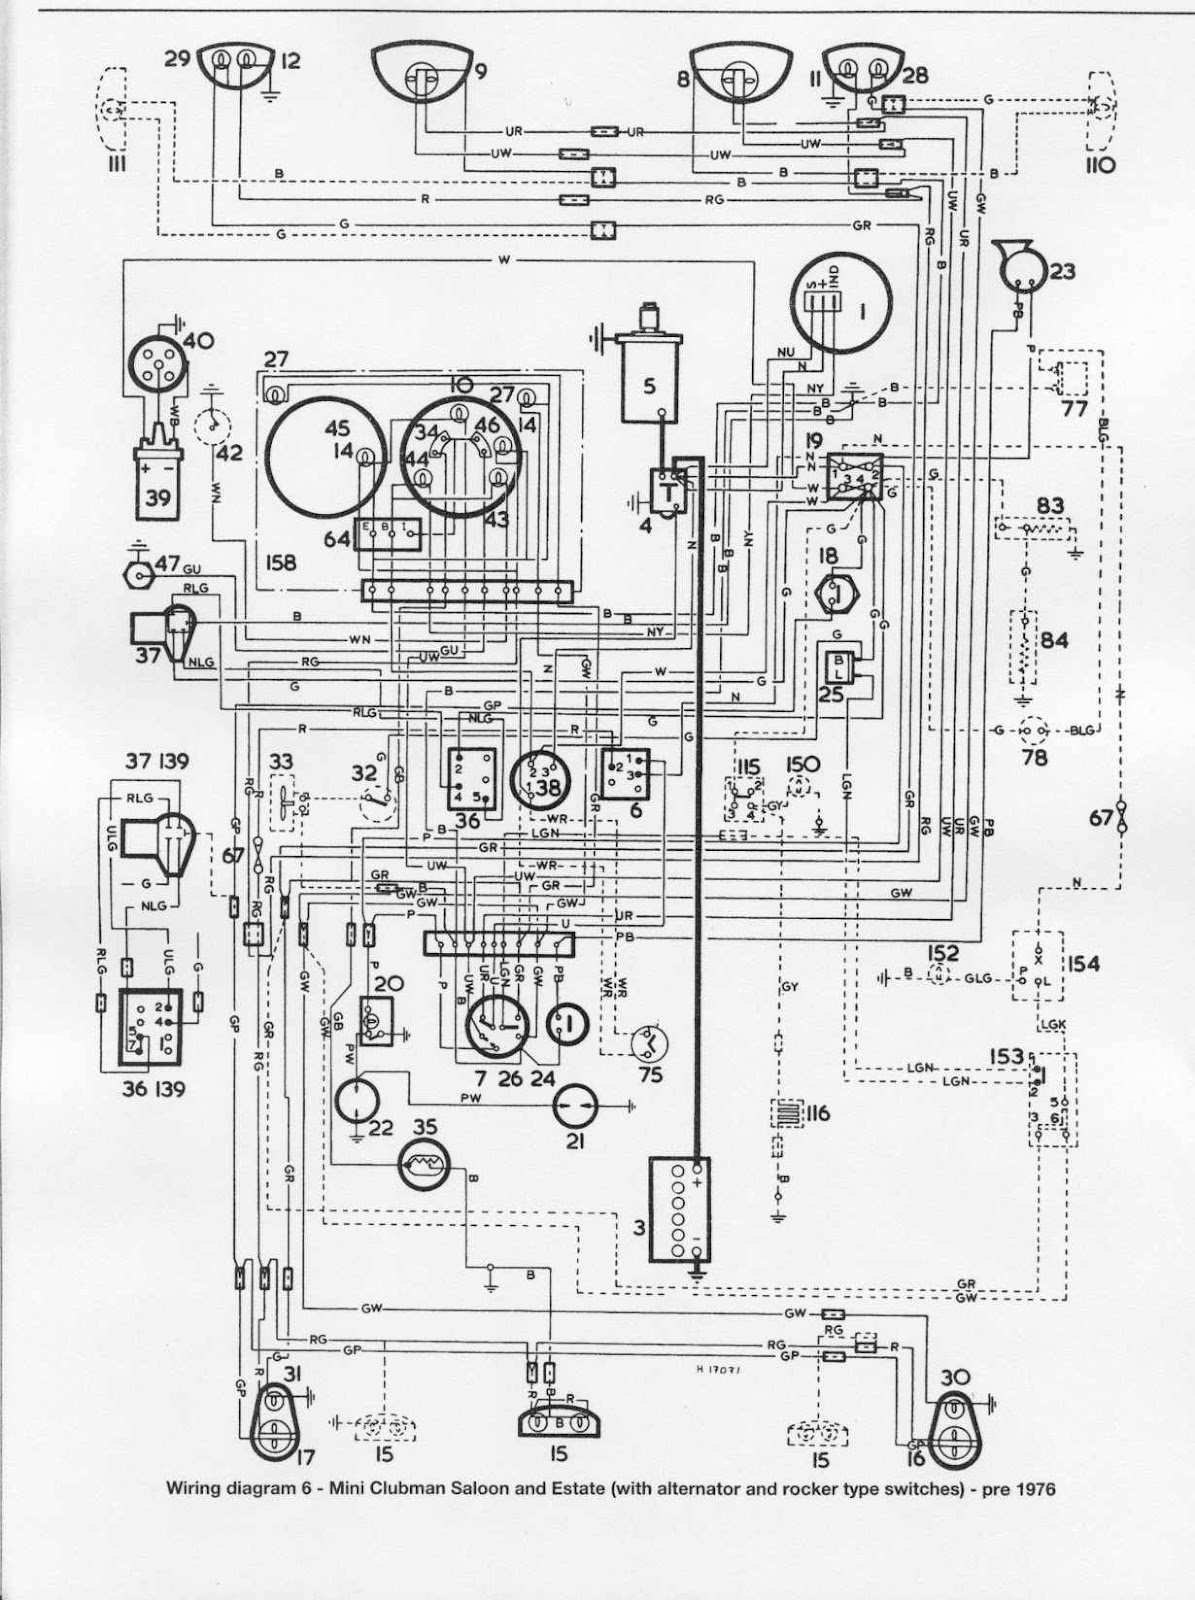 Mini Cooper Wiring Diagram Lights Pictures to Pin on Pinterest ...